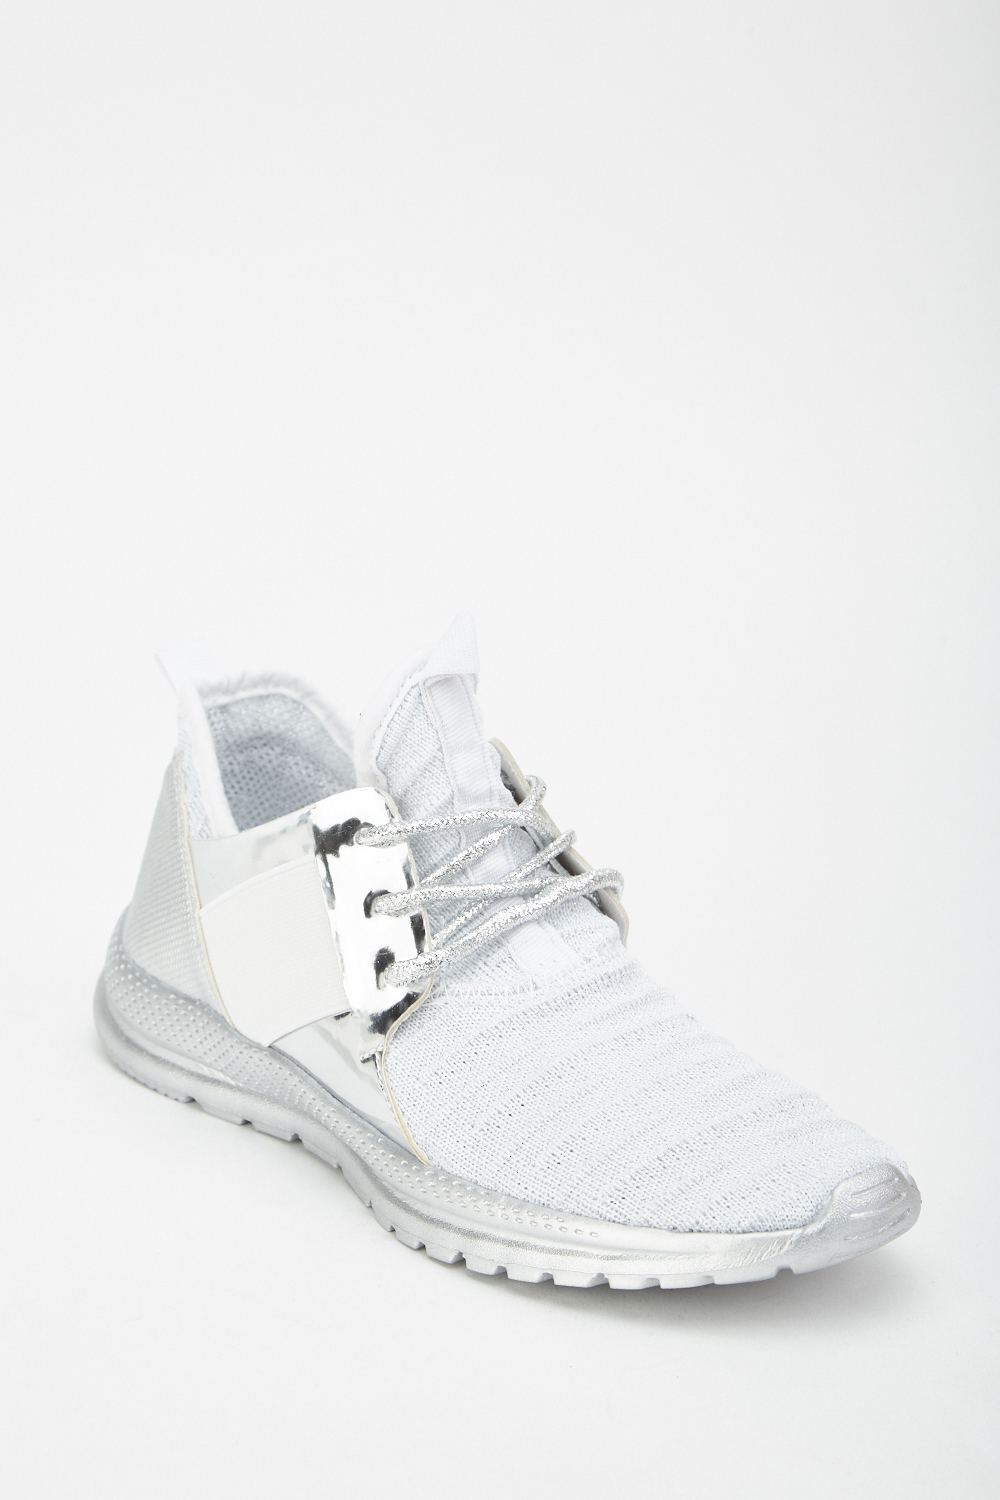 b63d62d8eda7d Metallic Lace Up Contrast Trainers - Just £5